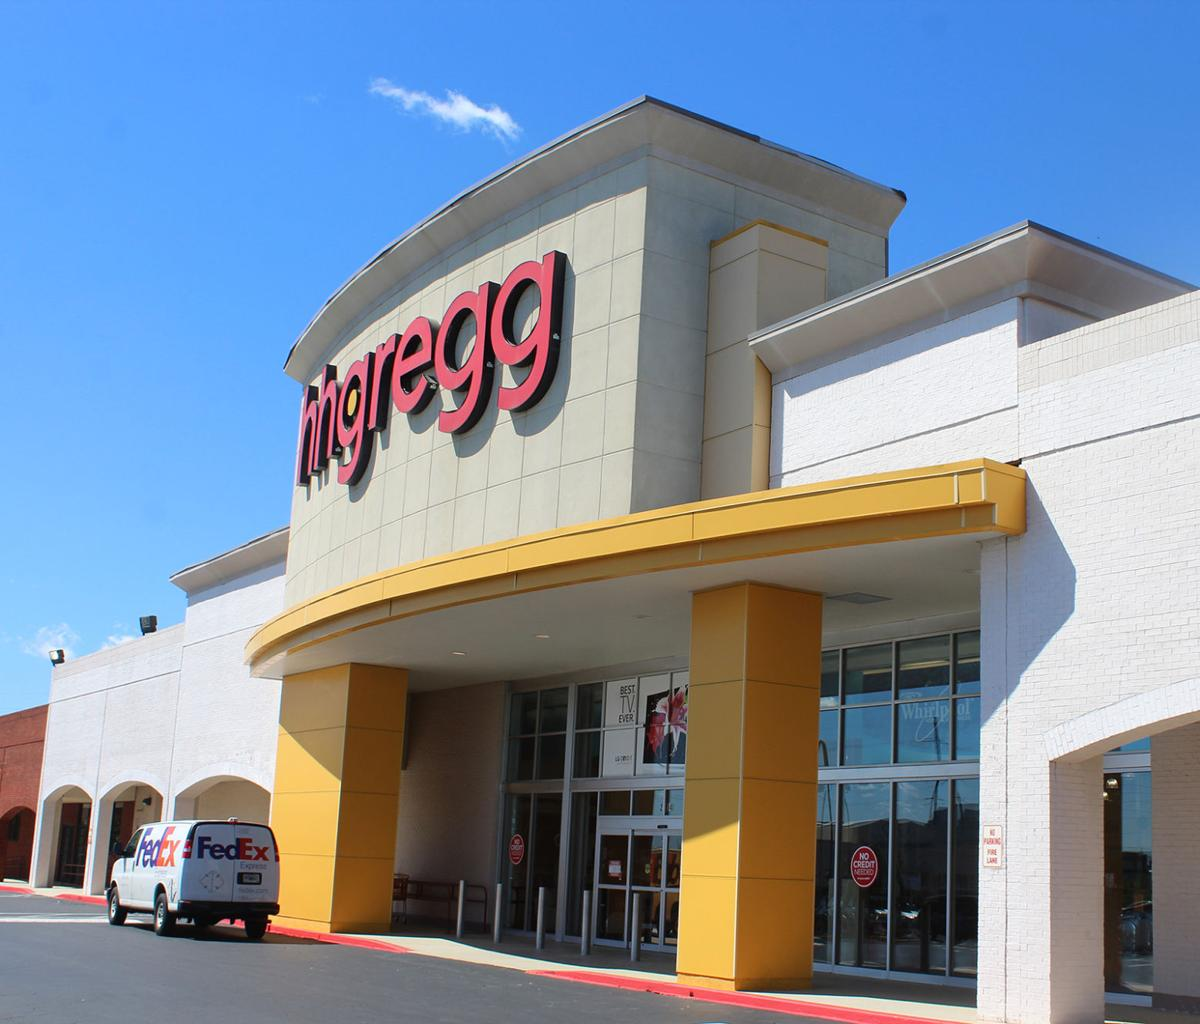 Hhgregg To Close All Stores 2 Stores In Cobb Will Be Affected News